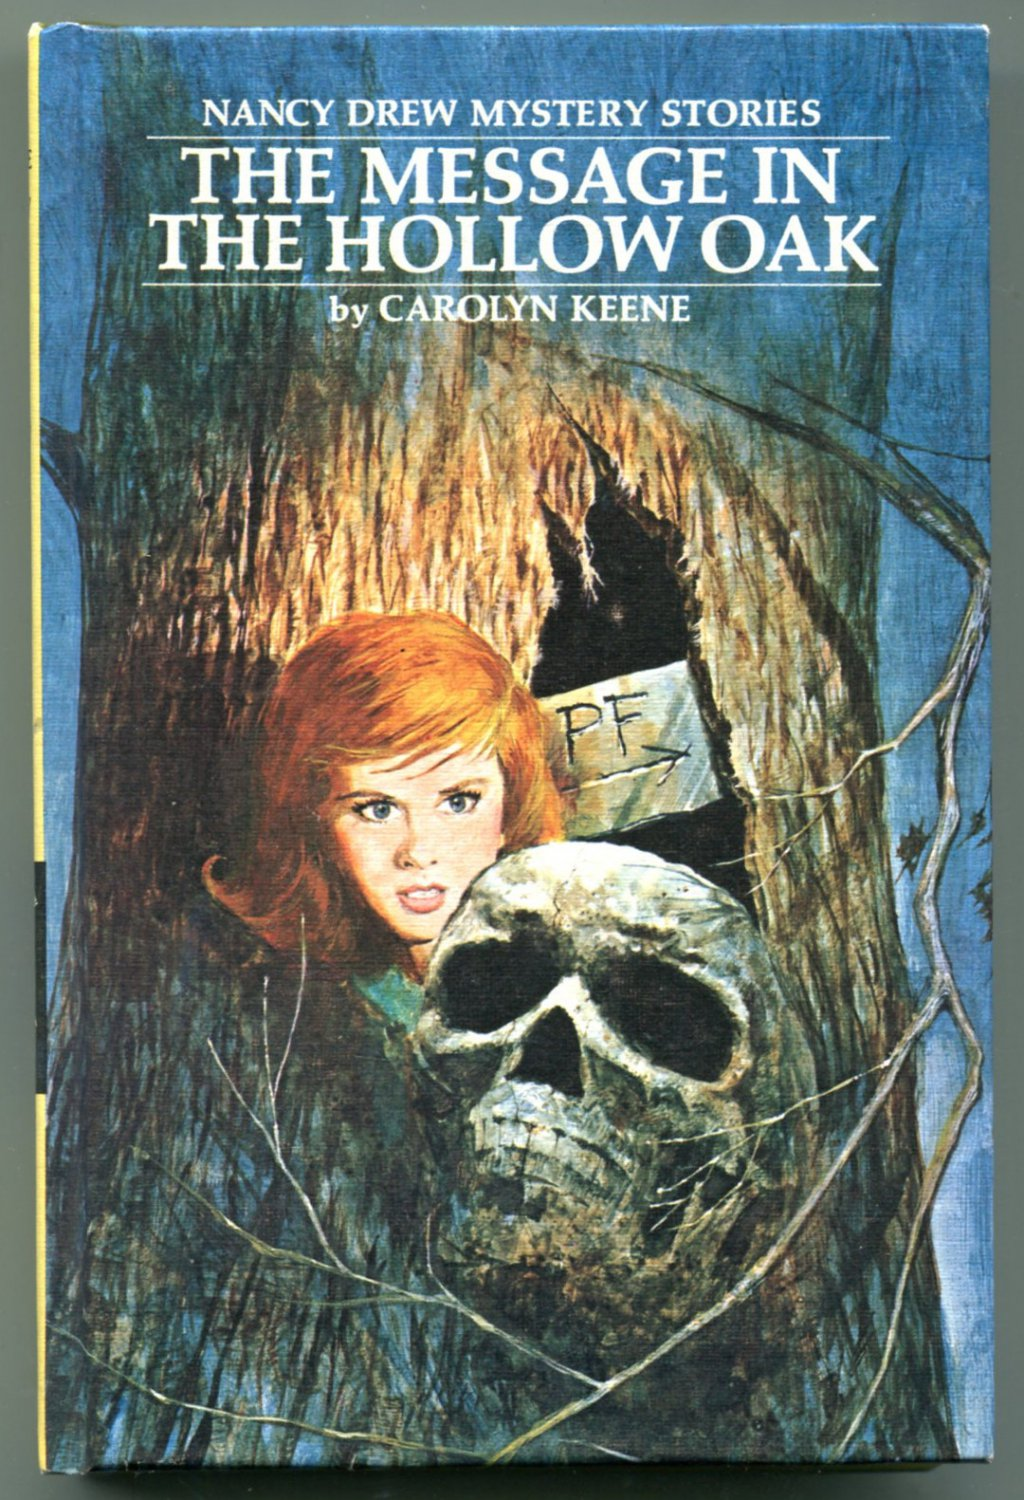 Nancy Drew 12 THE MESSAGE IN THE HOLLOW OAK Carolyn Keene  HC PC Unread